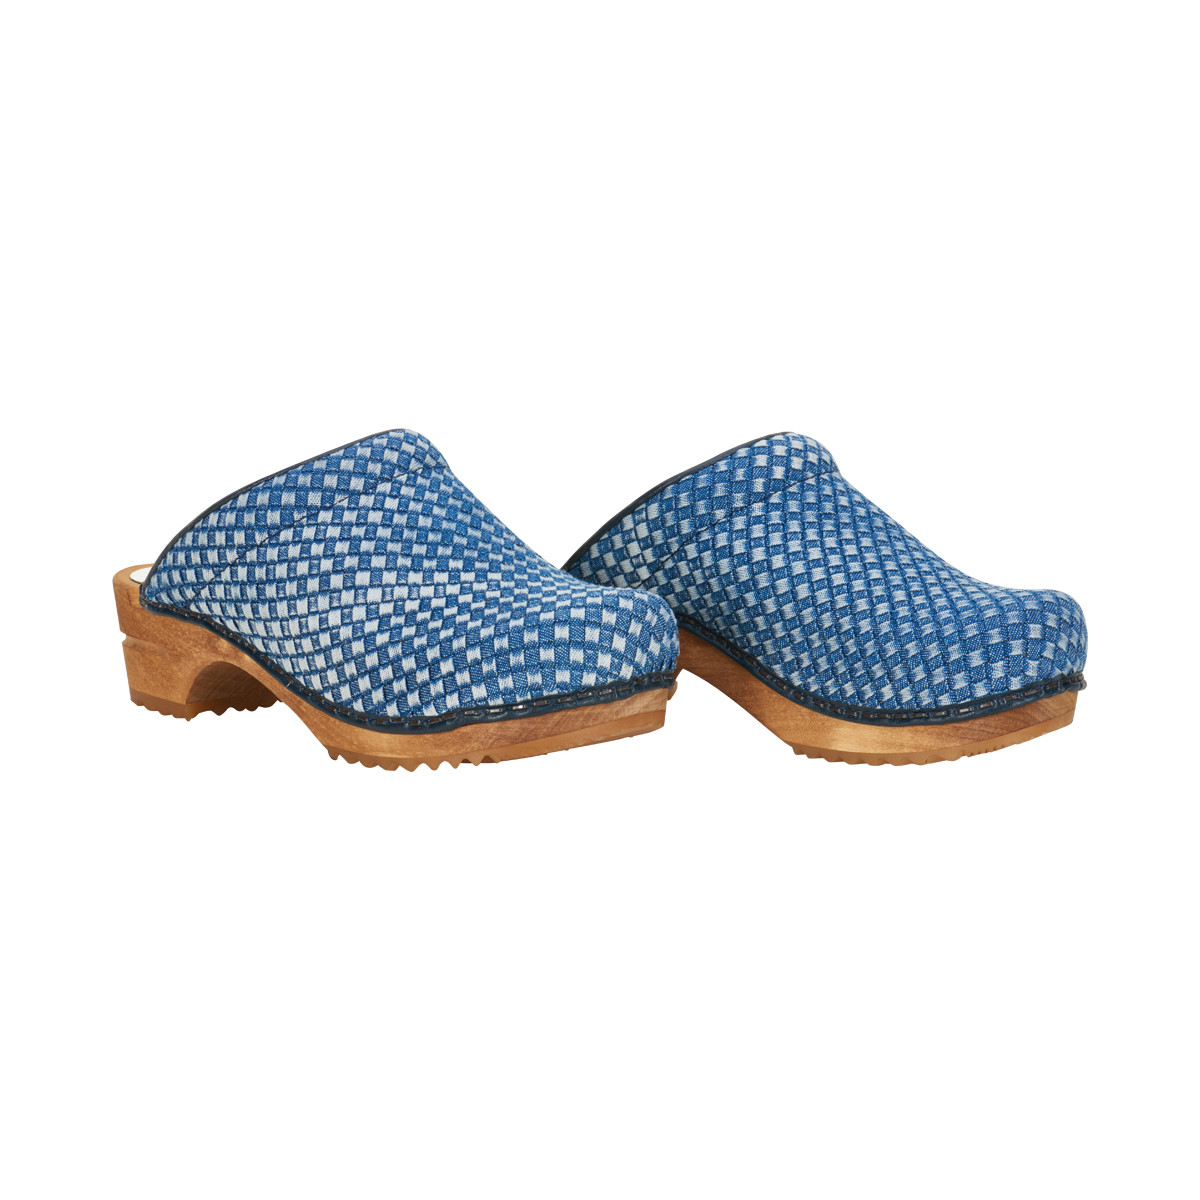 SANITA DEBRA CLOGS 455959 5